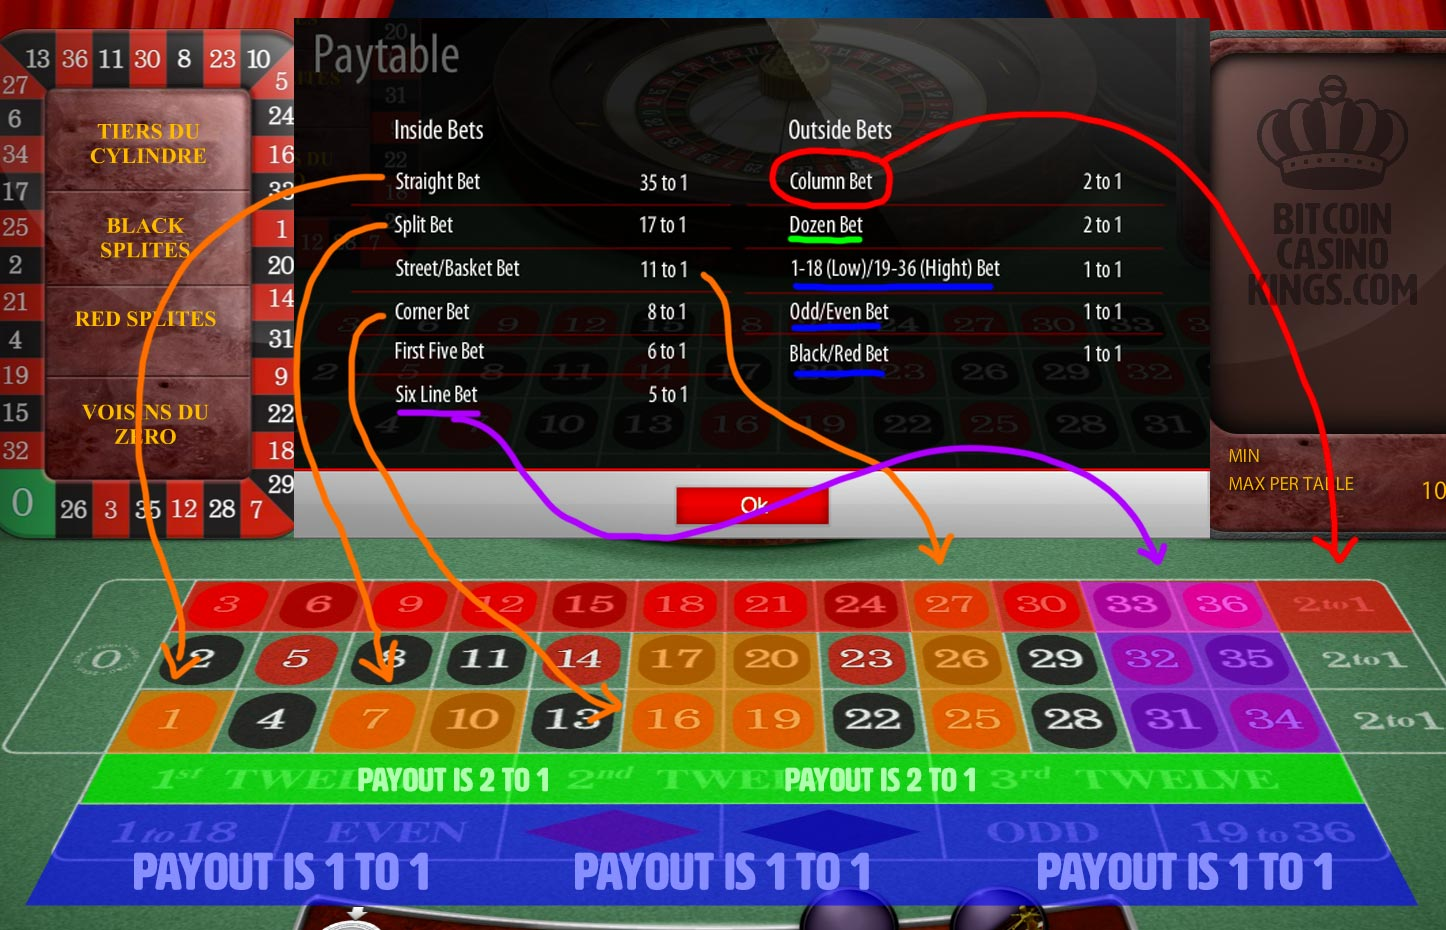 Roulette rules in clear infographic image and payouts.